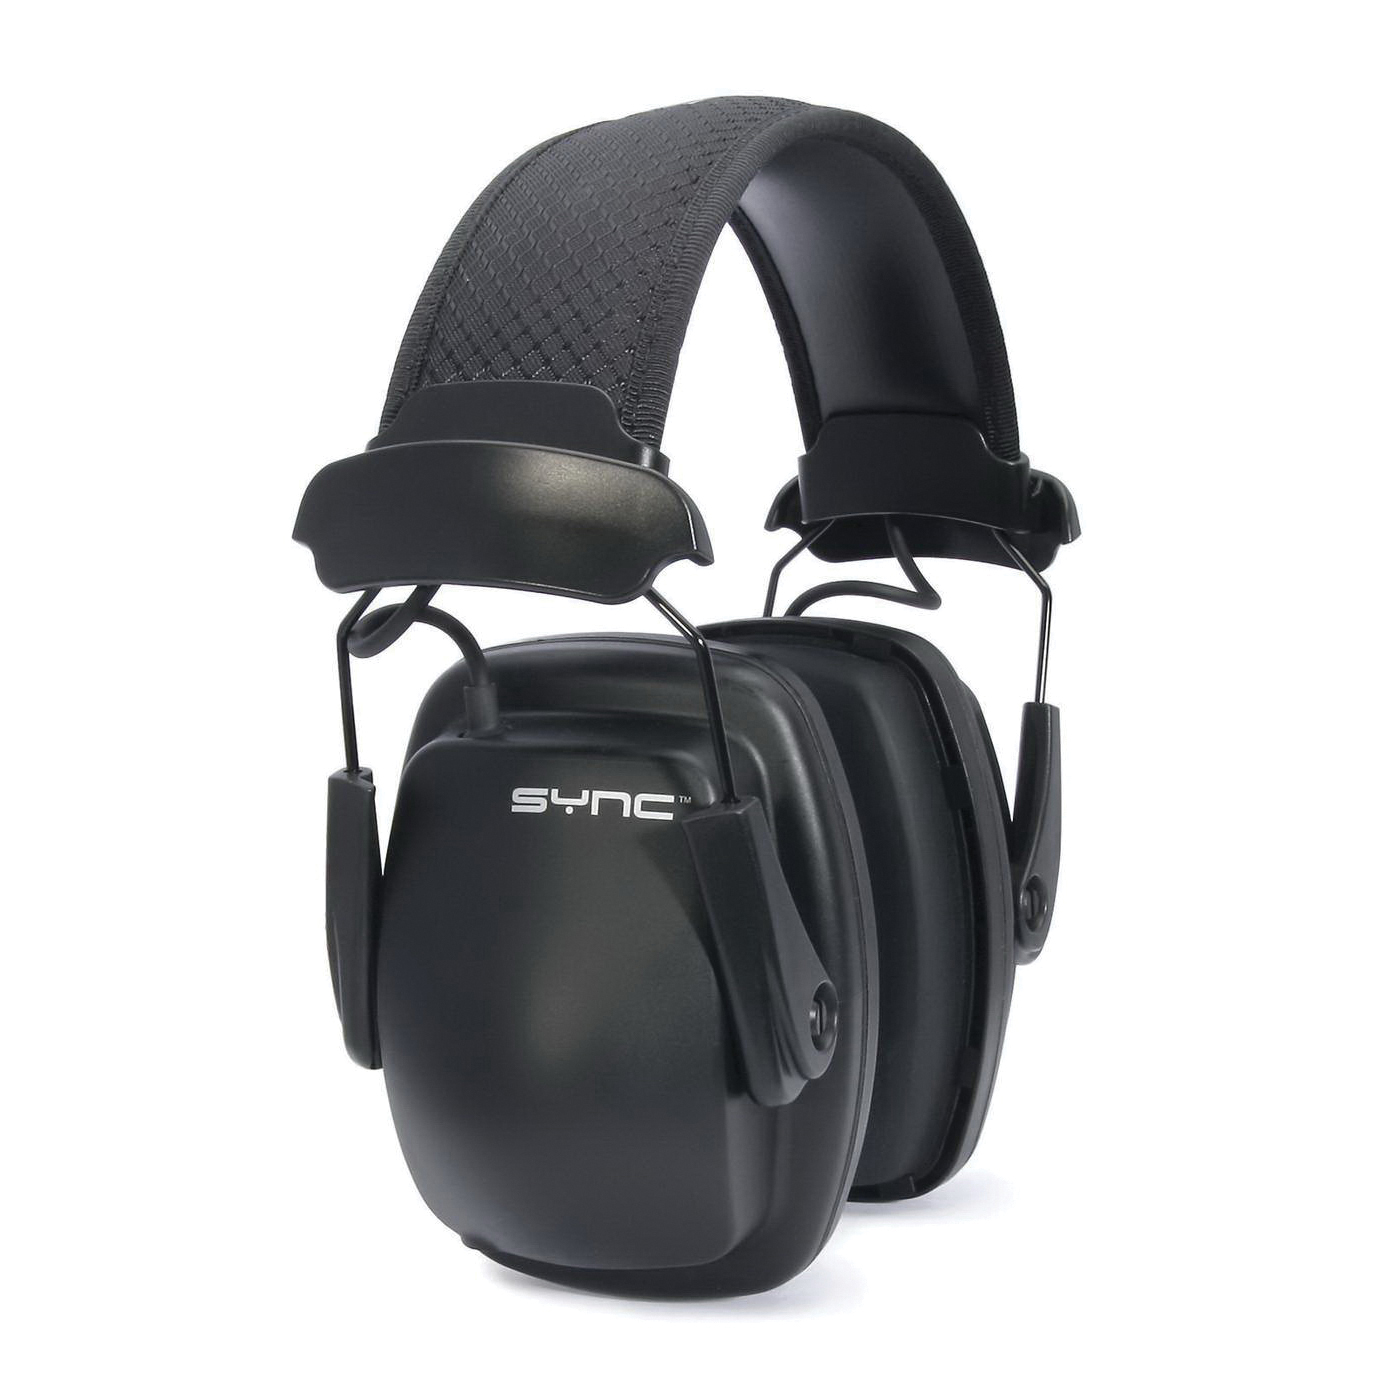 Howard Leight by Honeywell 1012000 Dielectric Earmuff Hygiene Kit, For Use With Lightning L3/L3H/L3N/L3Hv and Viking® V3 Noise Blocking Earmuffs